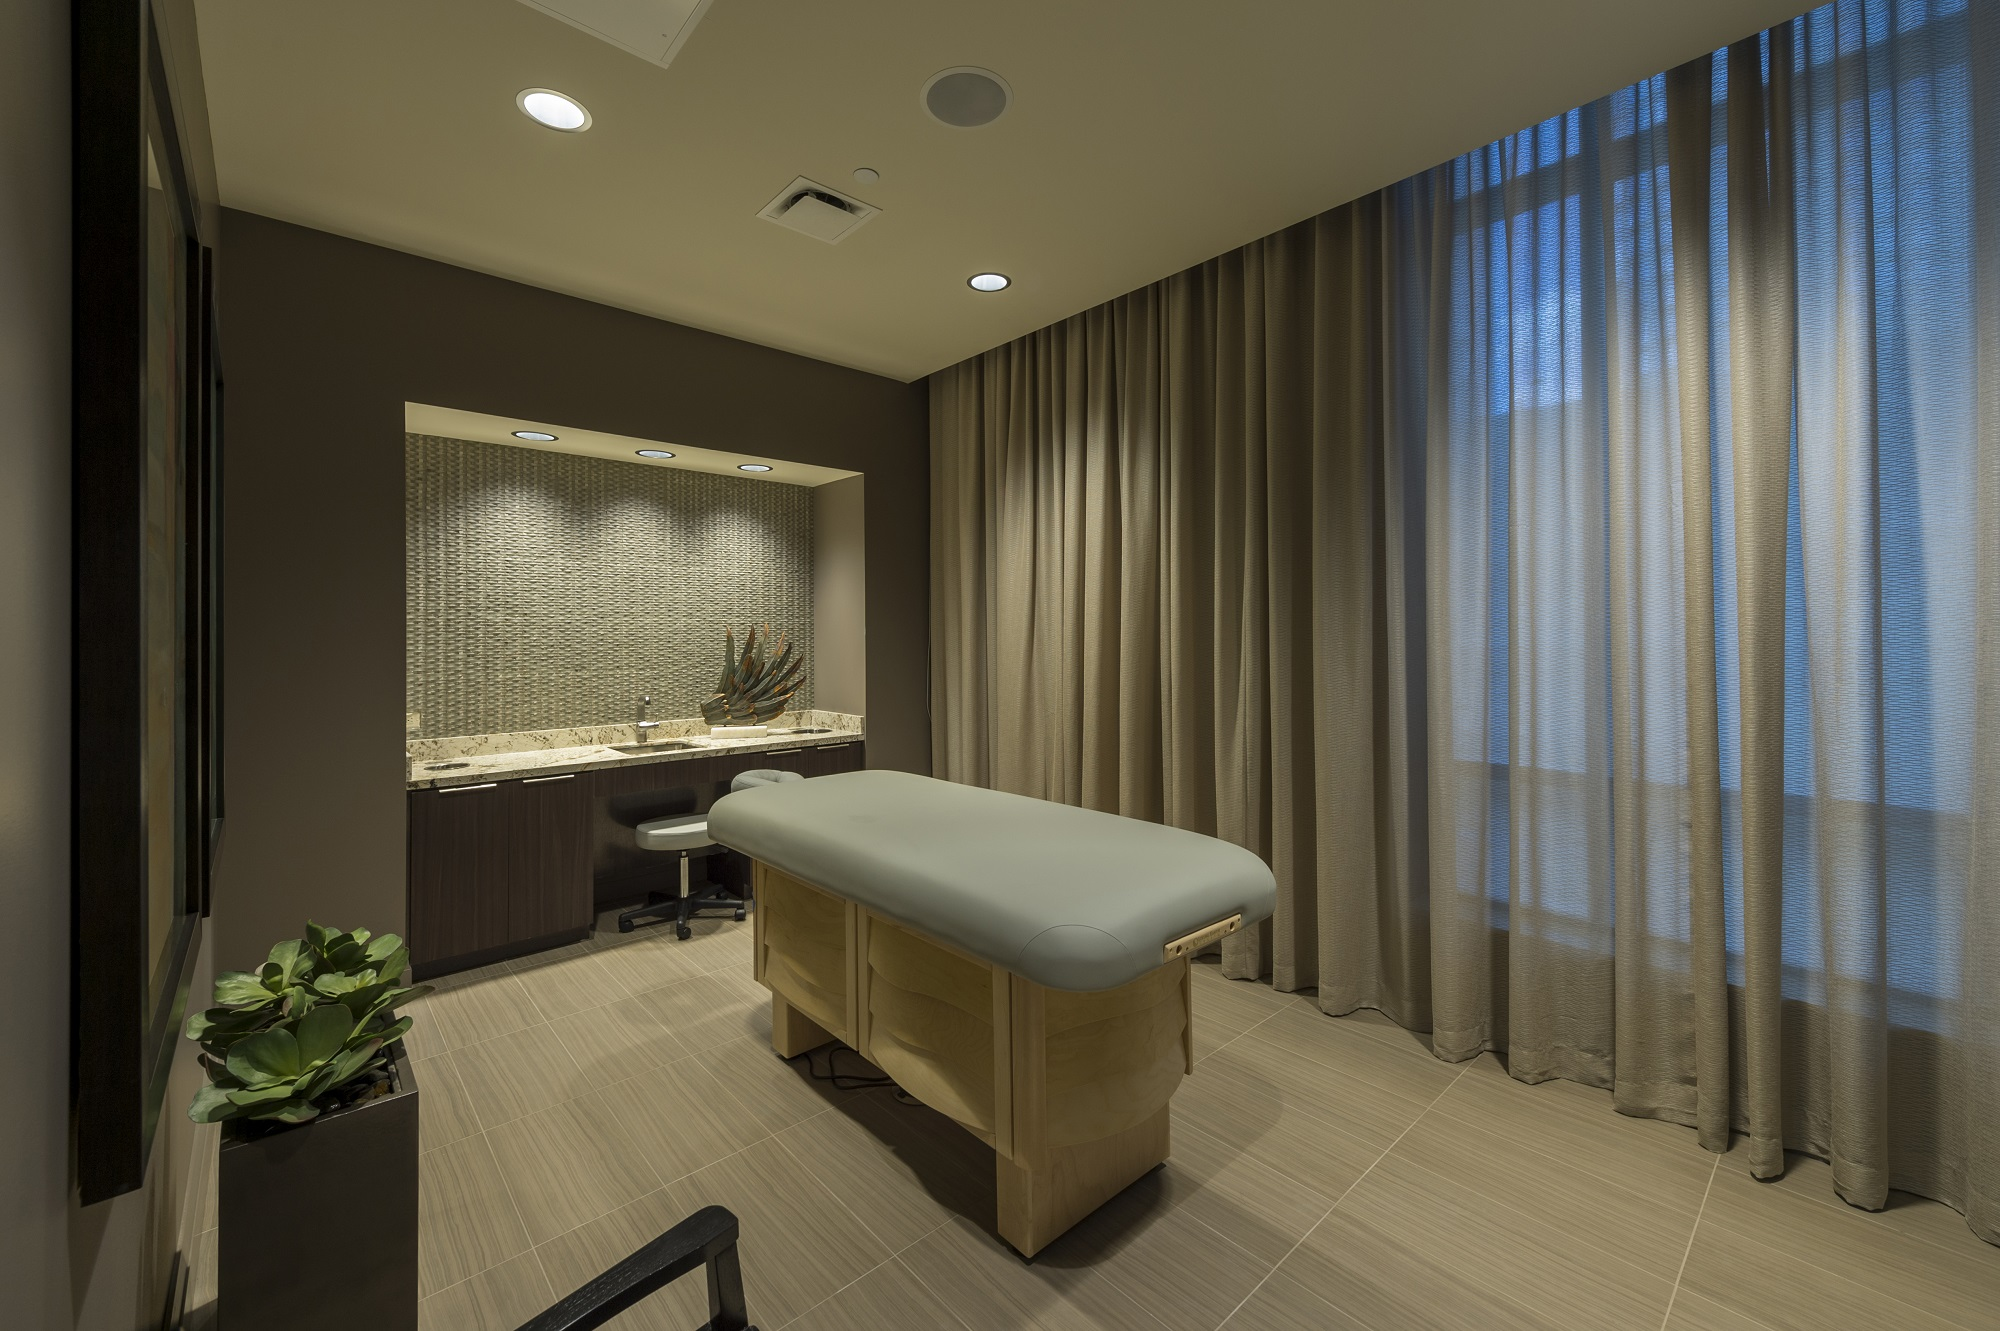 Market Square Tower Massage Room